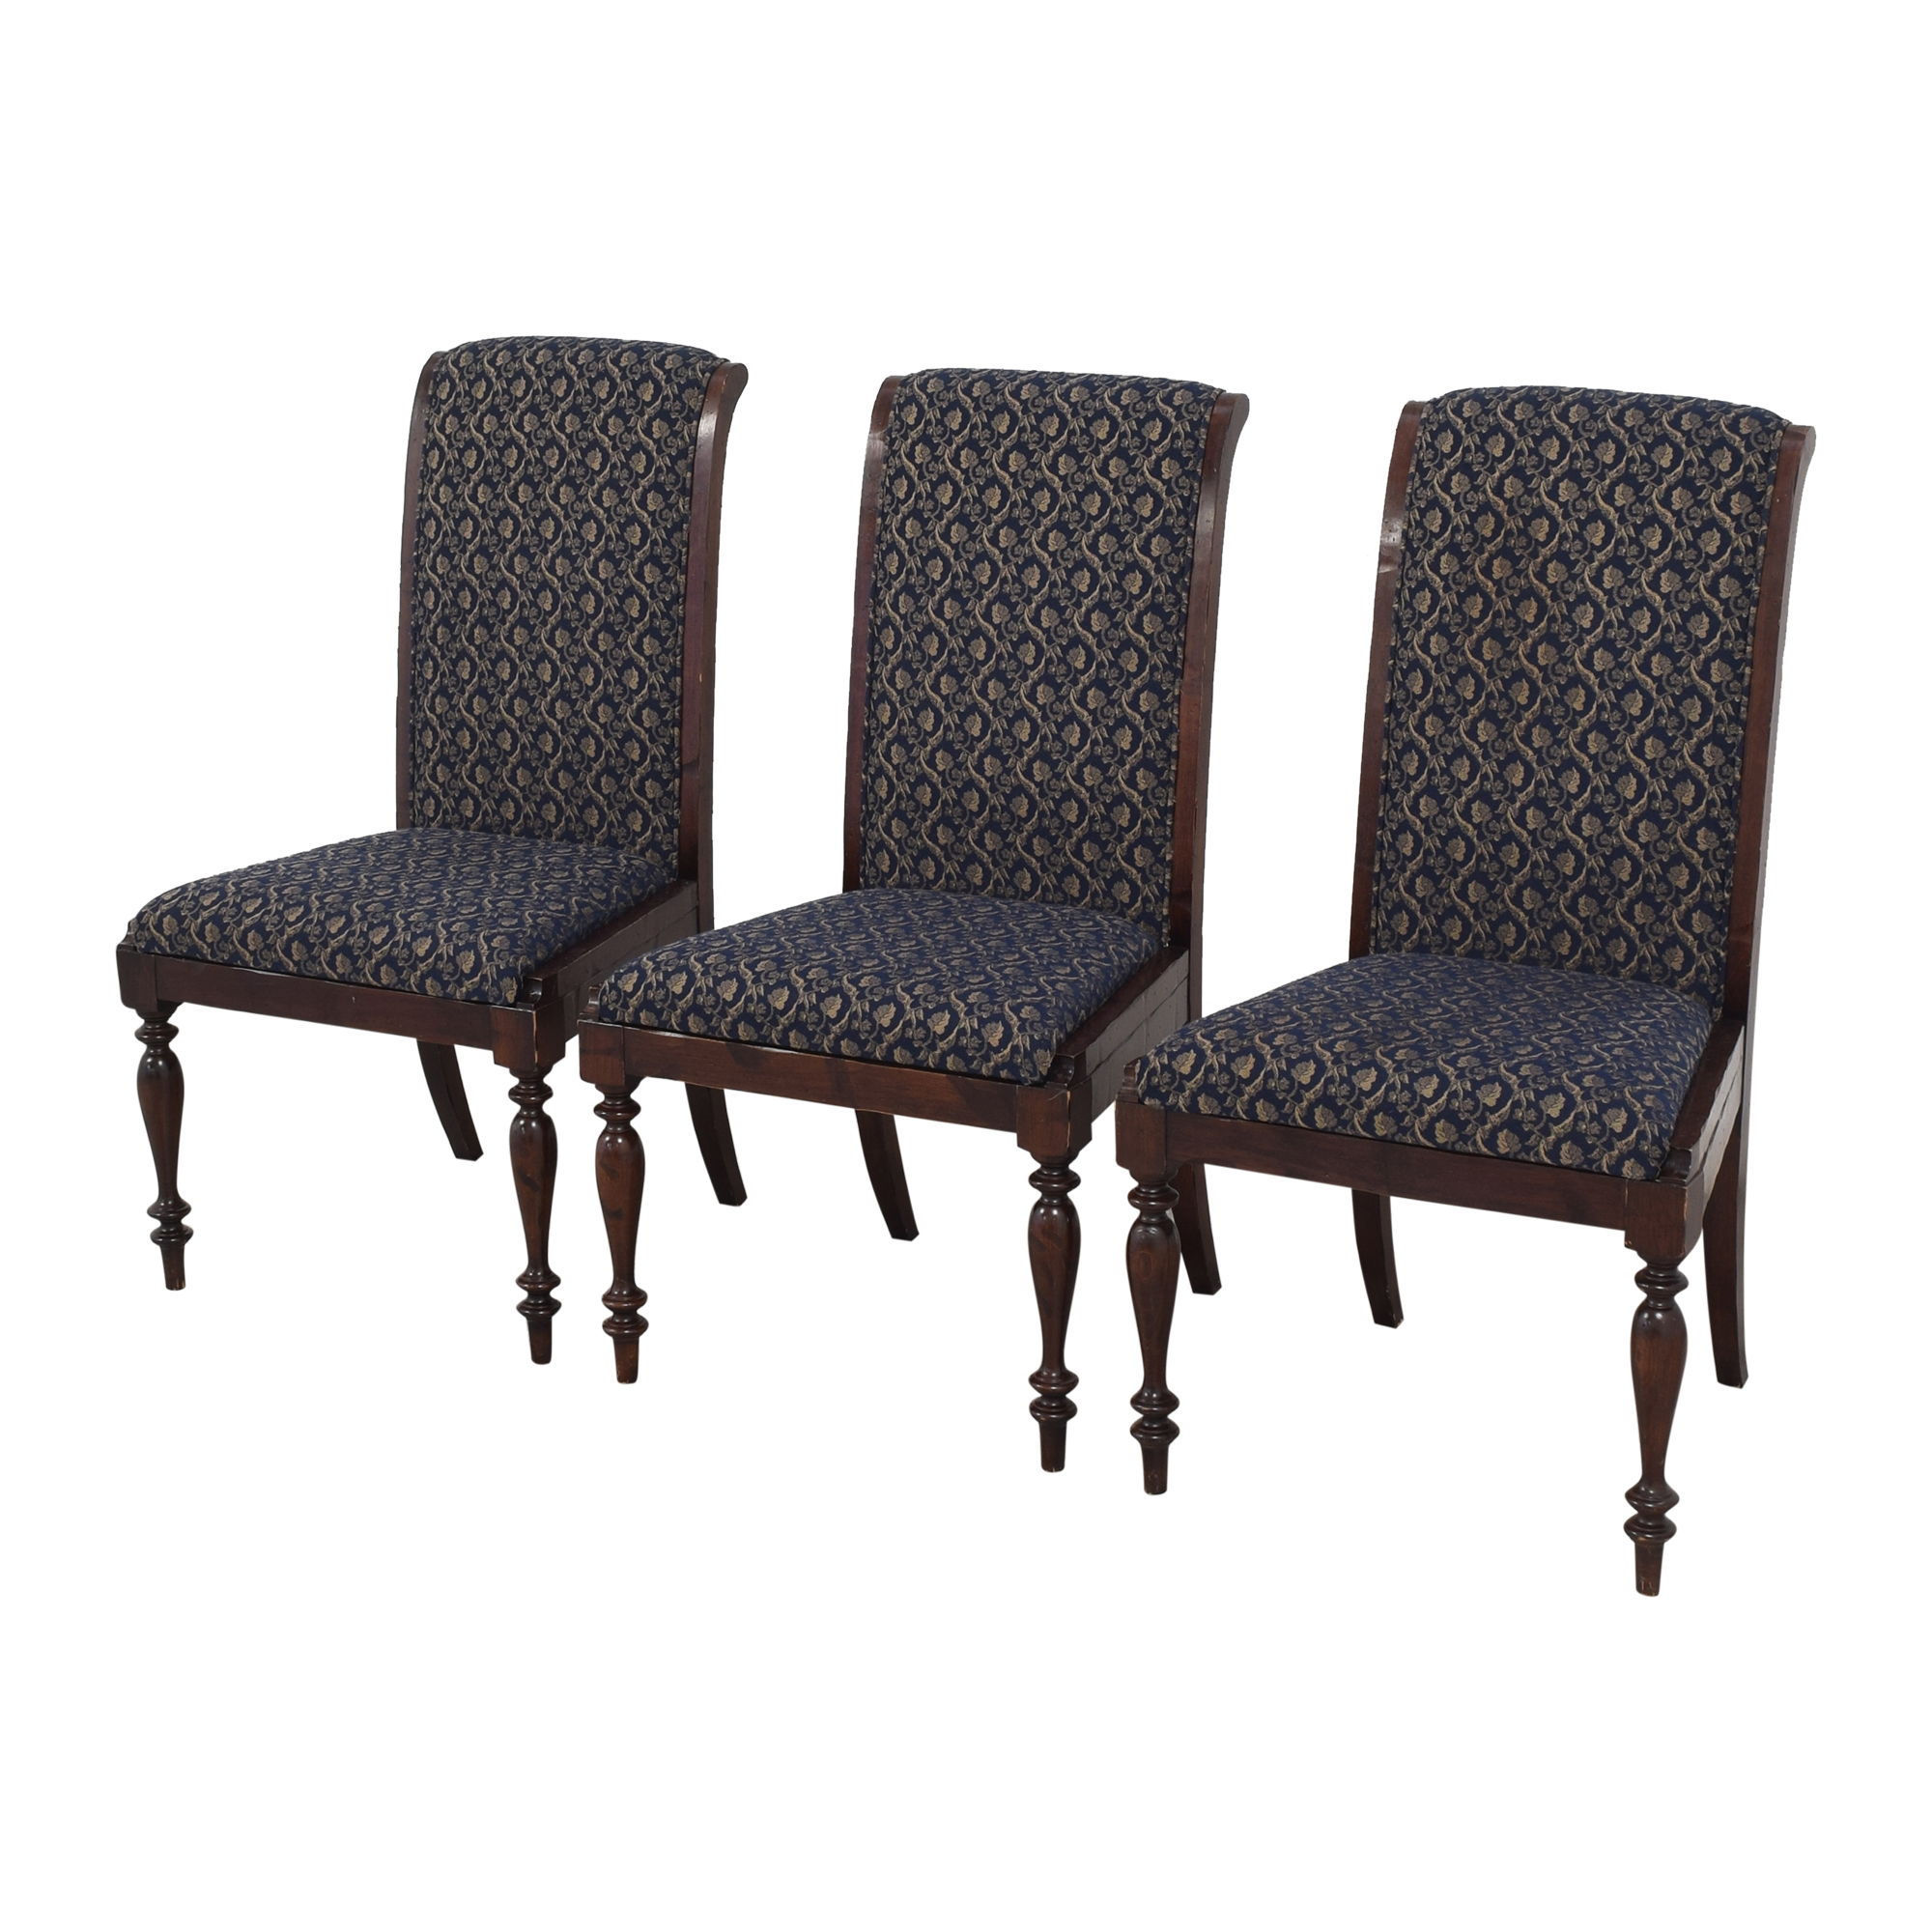 Sacchetto Fratelli Sacchetto Fratelli Upholstered High Back Dining Chairs on sale